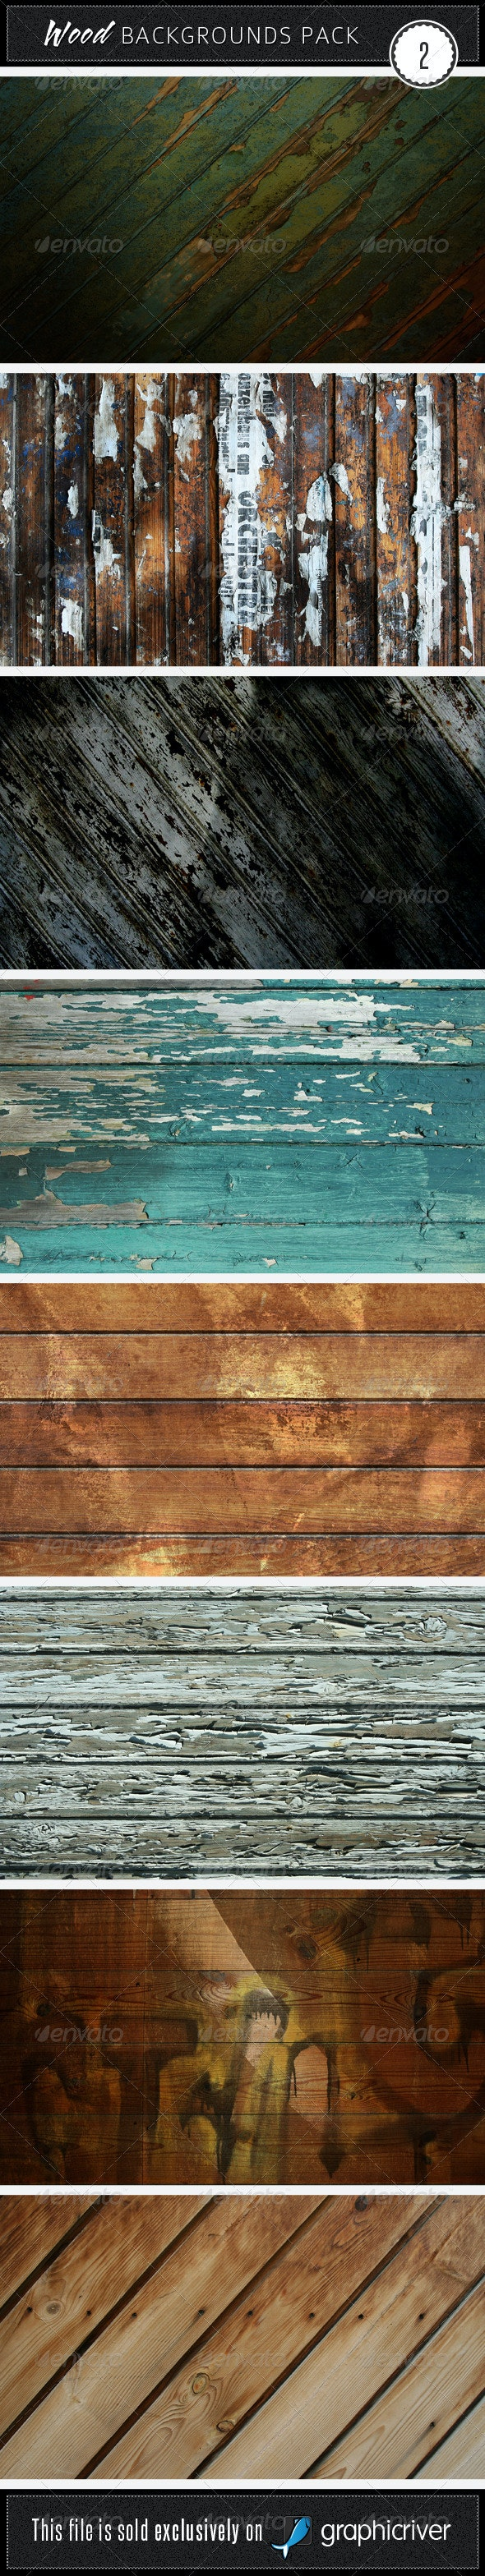 Wood Backgrounds Pack 2 - Wood Textures